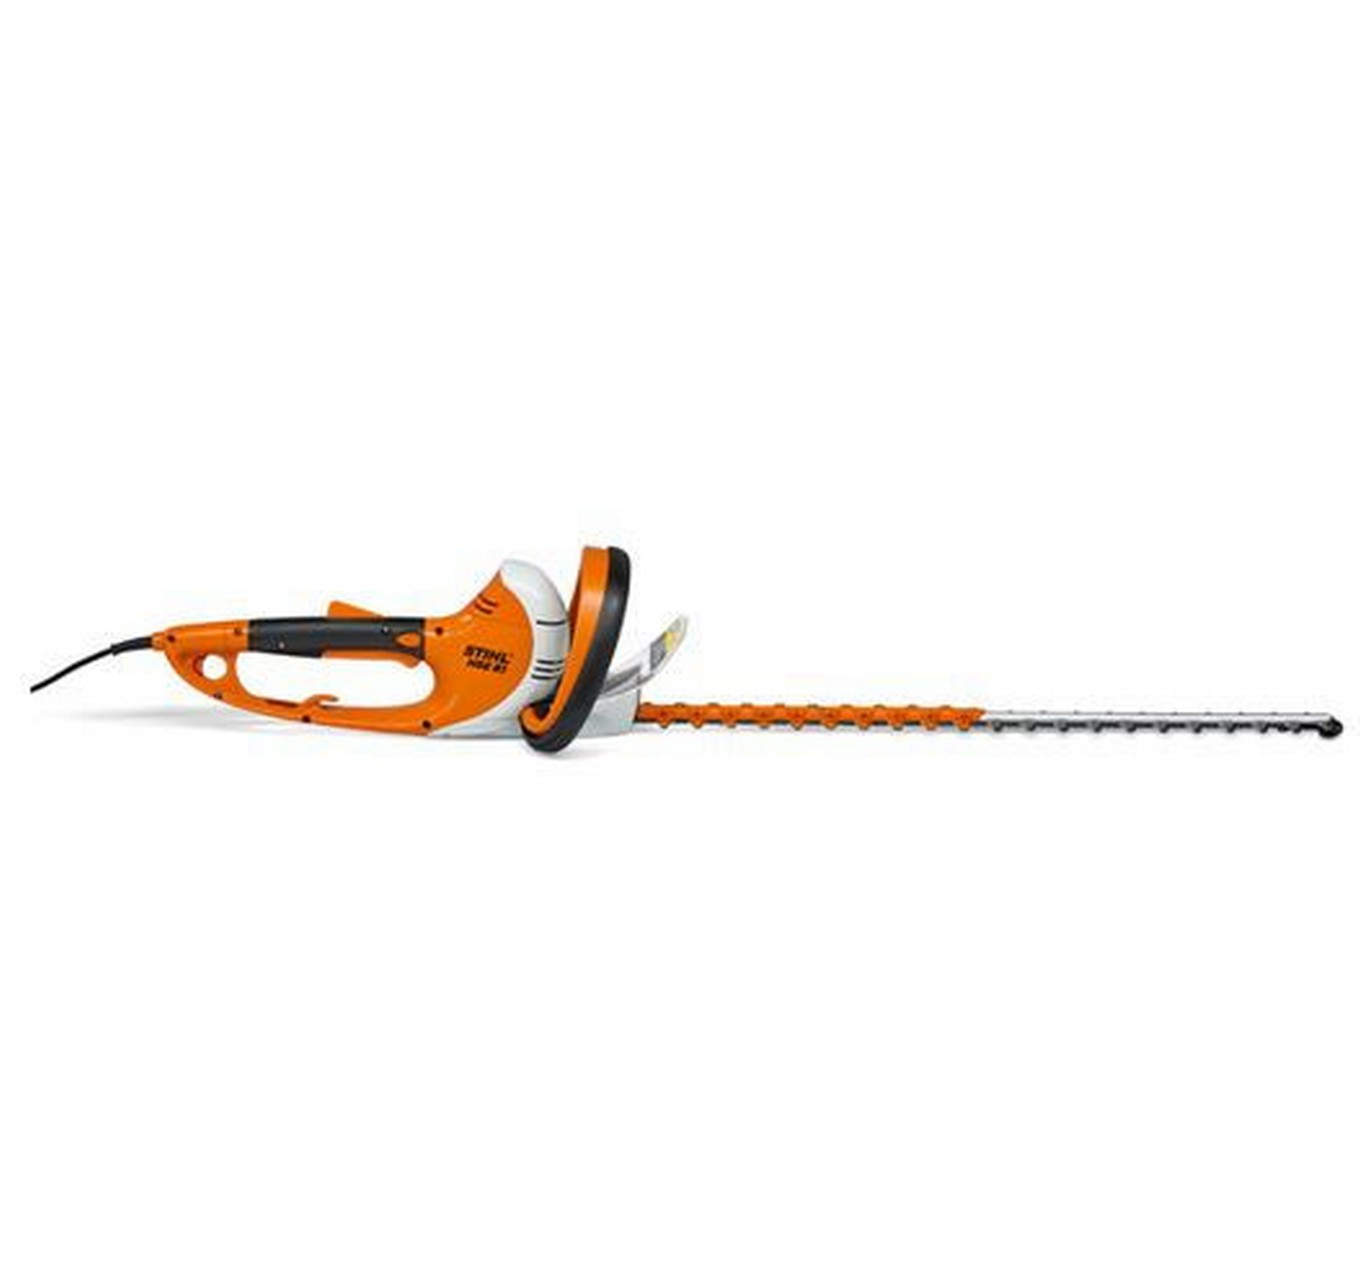 HSE 81 Hedge Trimmer 28